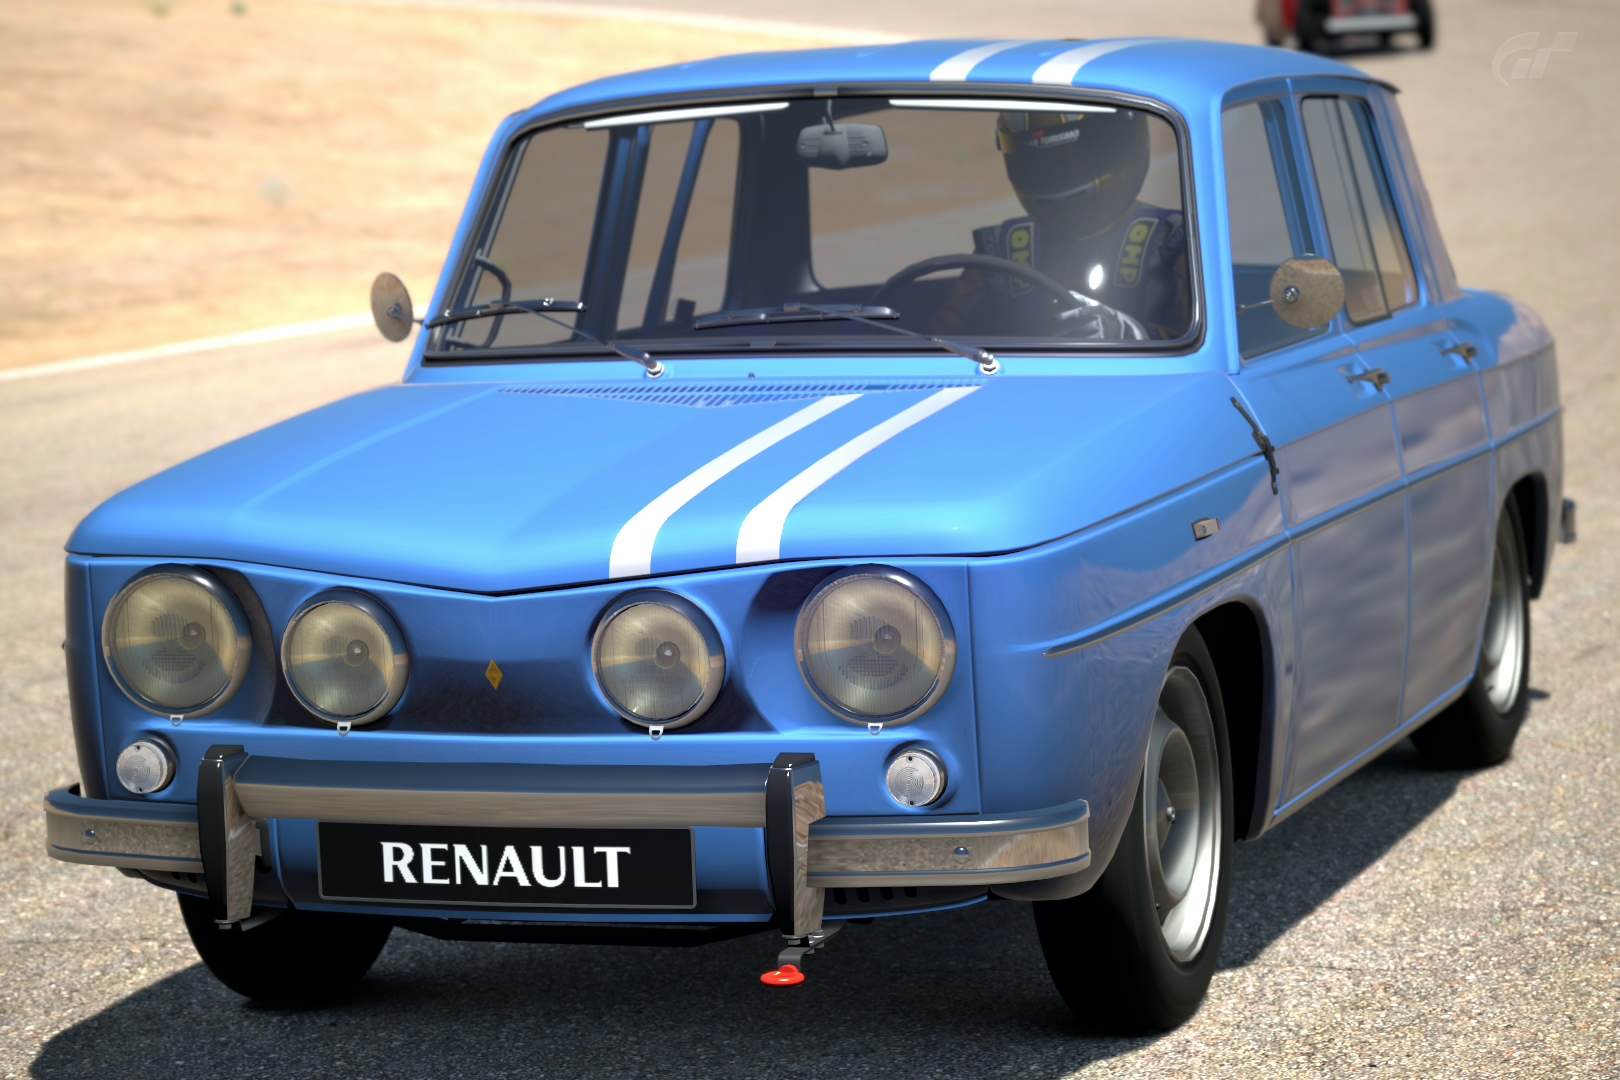 renault r8 gordini 39 66 gran turismo wiki fandom powered by wikia. Black Bedroom Furniture Sets. Home Design Ideas